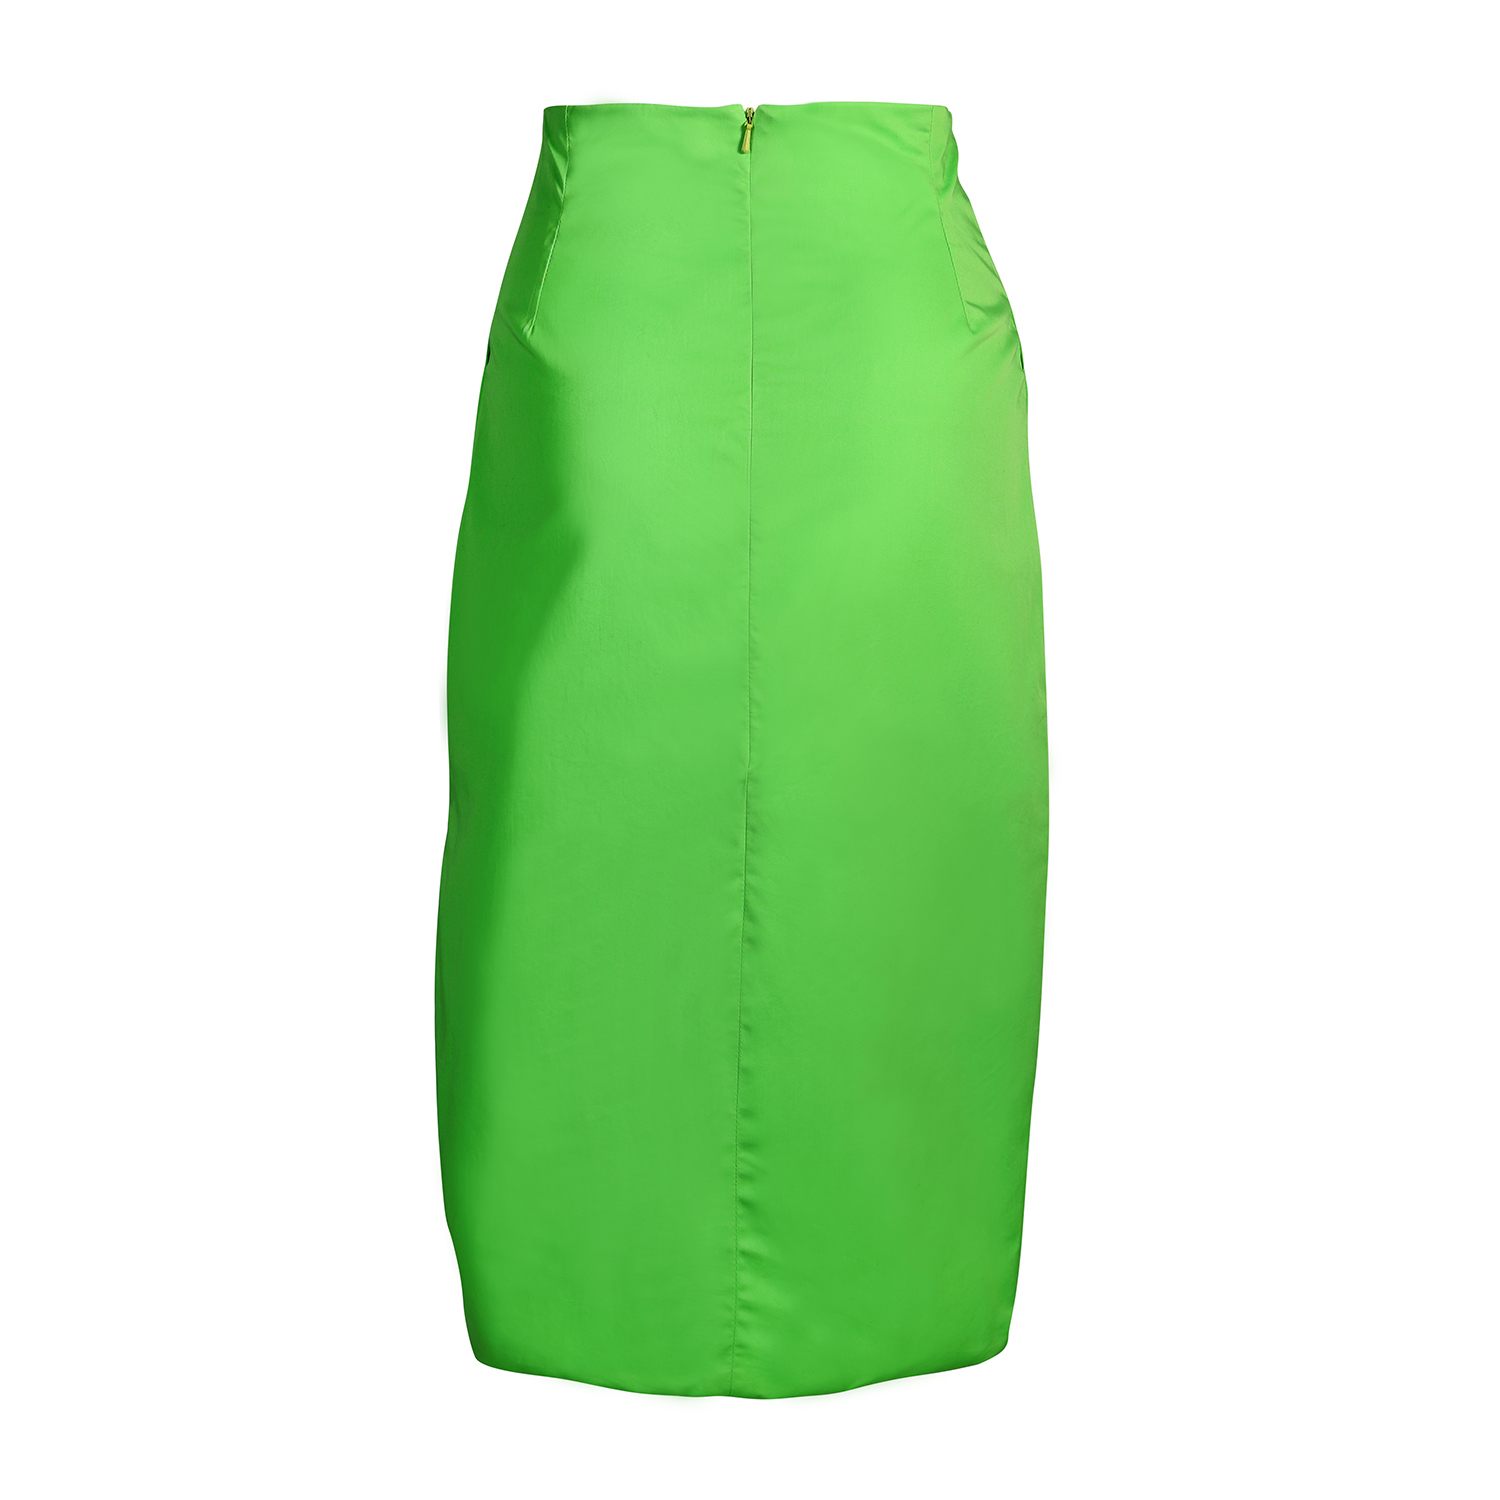 sydney davies high waisted tailored skirt in green lyst